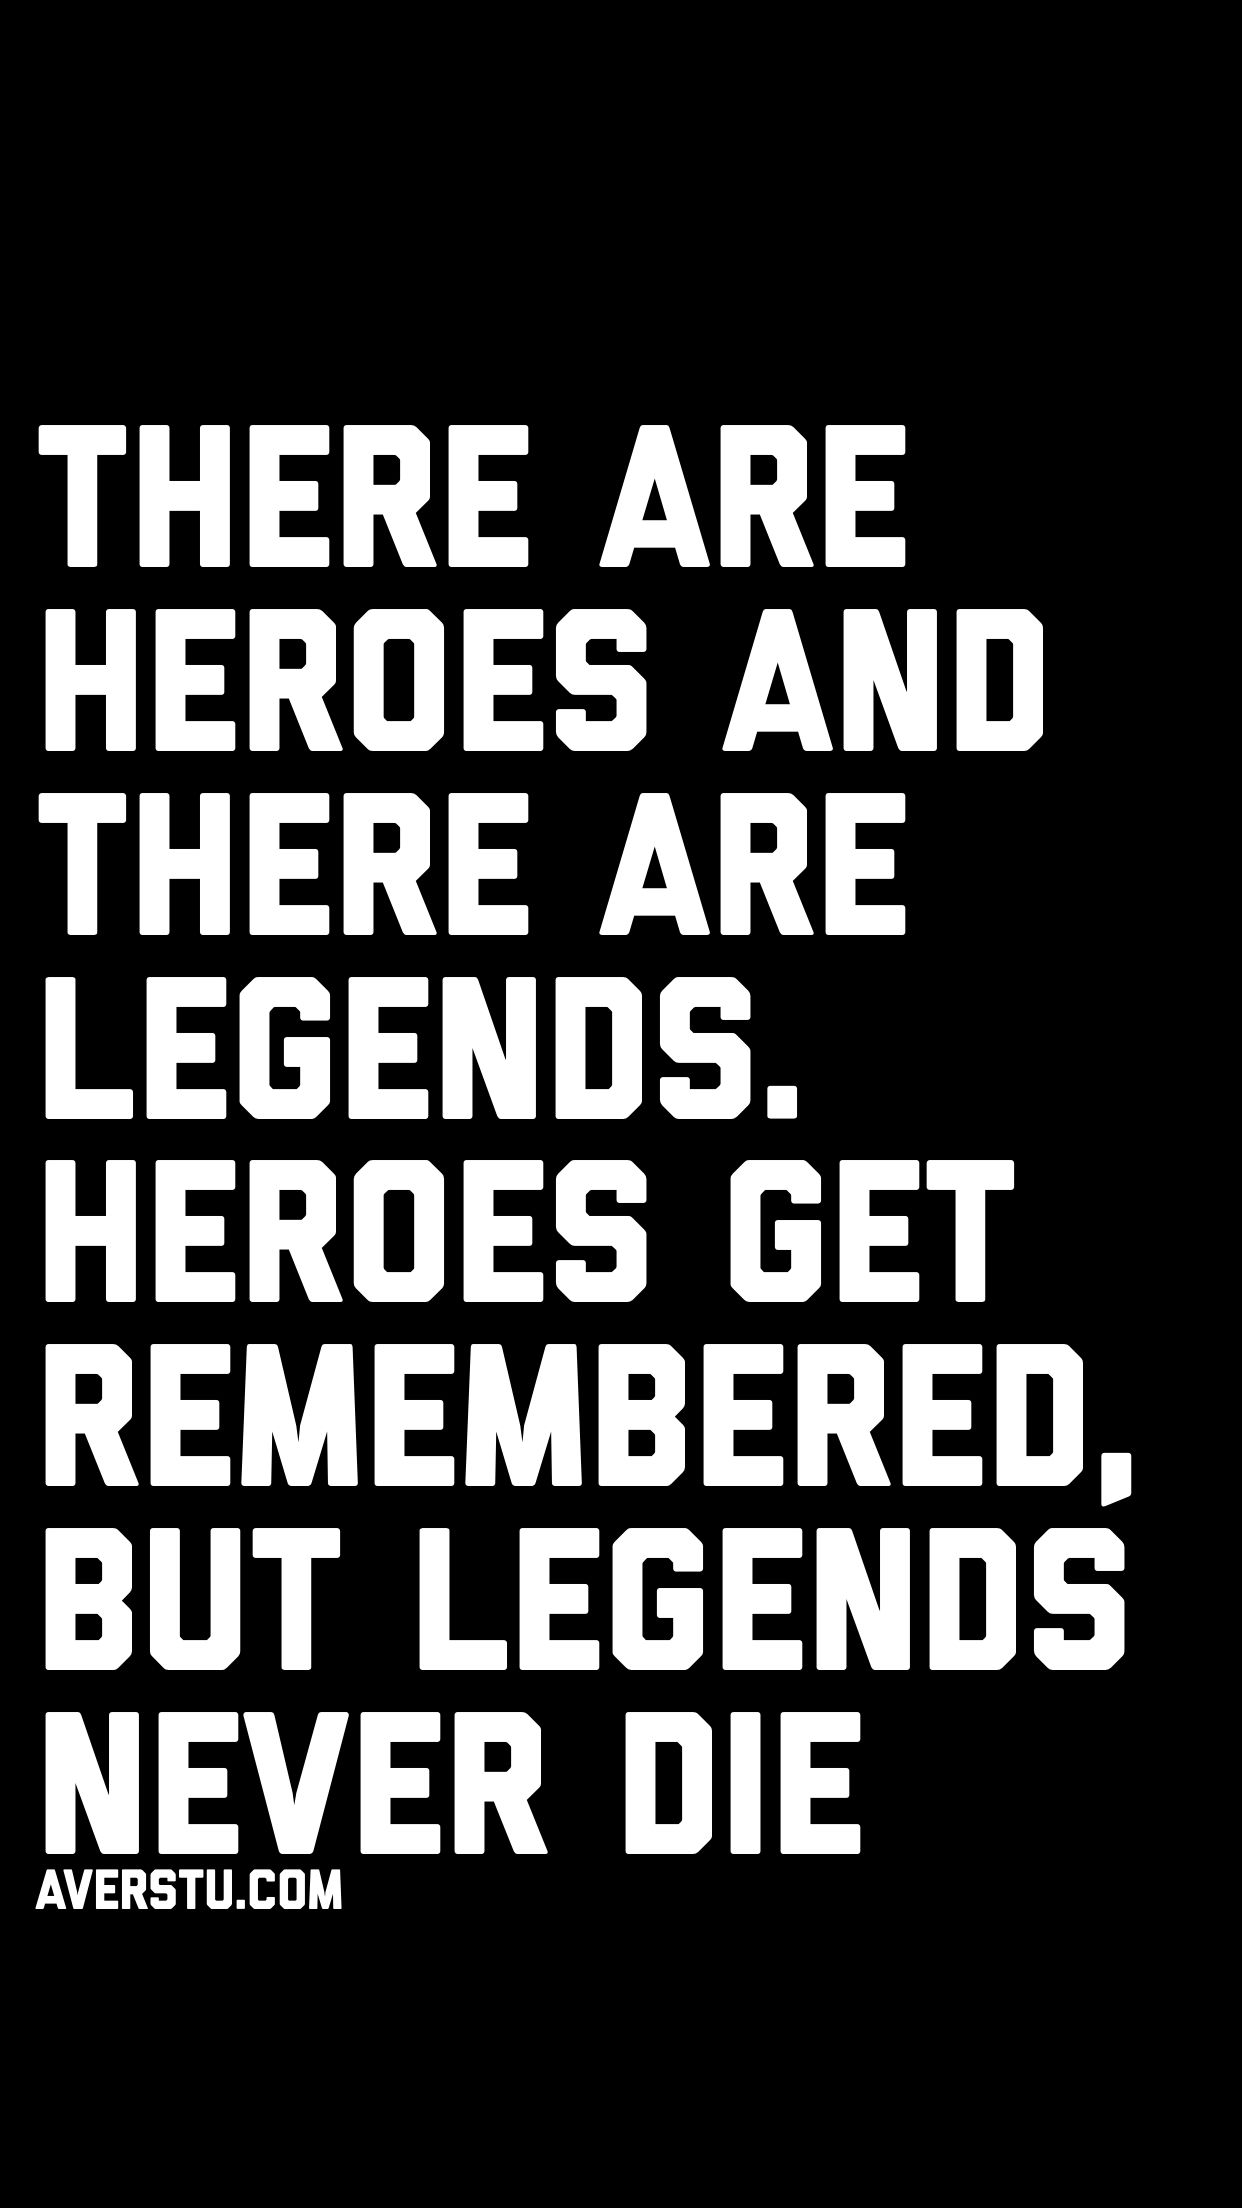 Heroes And Legends Quotes Pinterest Quotes Inspiring Quotes